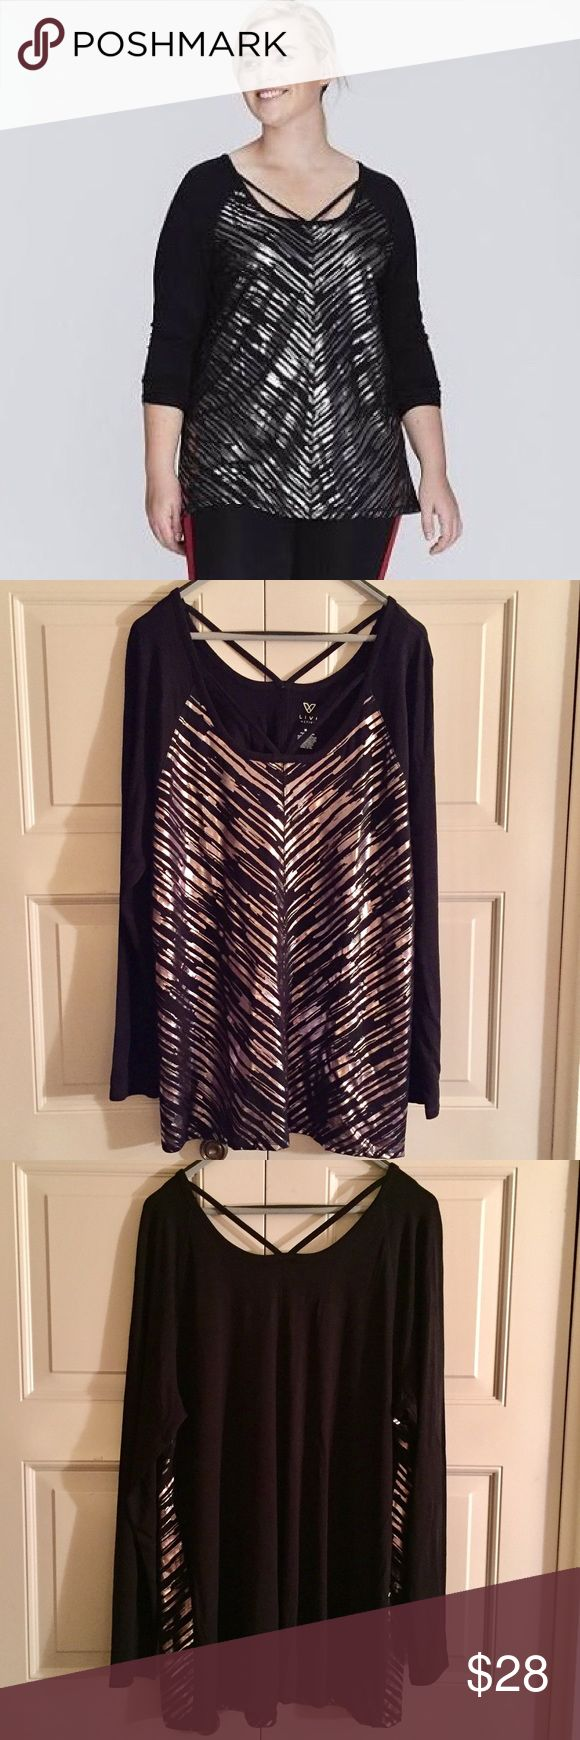 🆕 Lane Bryant Livi Strappy Top Lane Bryant Livi Activewear Metallic Strappy Top.  Size 18/20.  NWT Lane Bryant Tops Tees - Long Sleeve